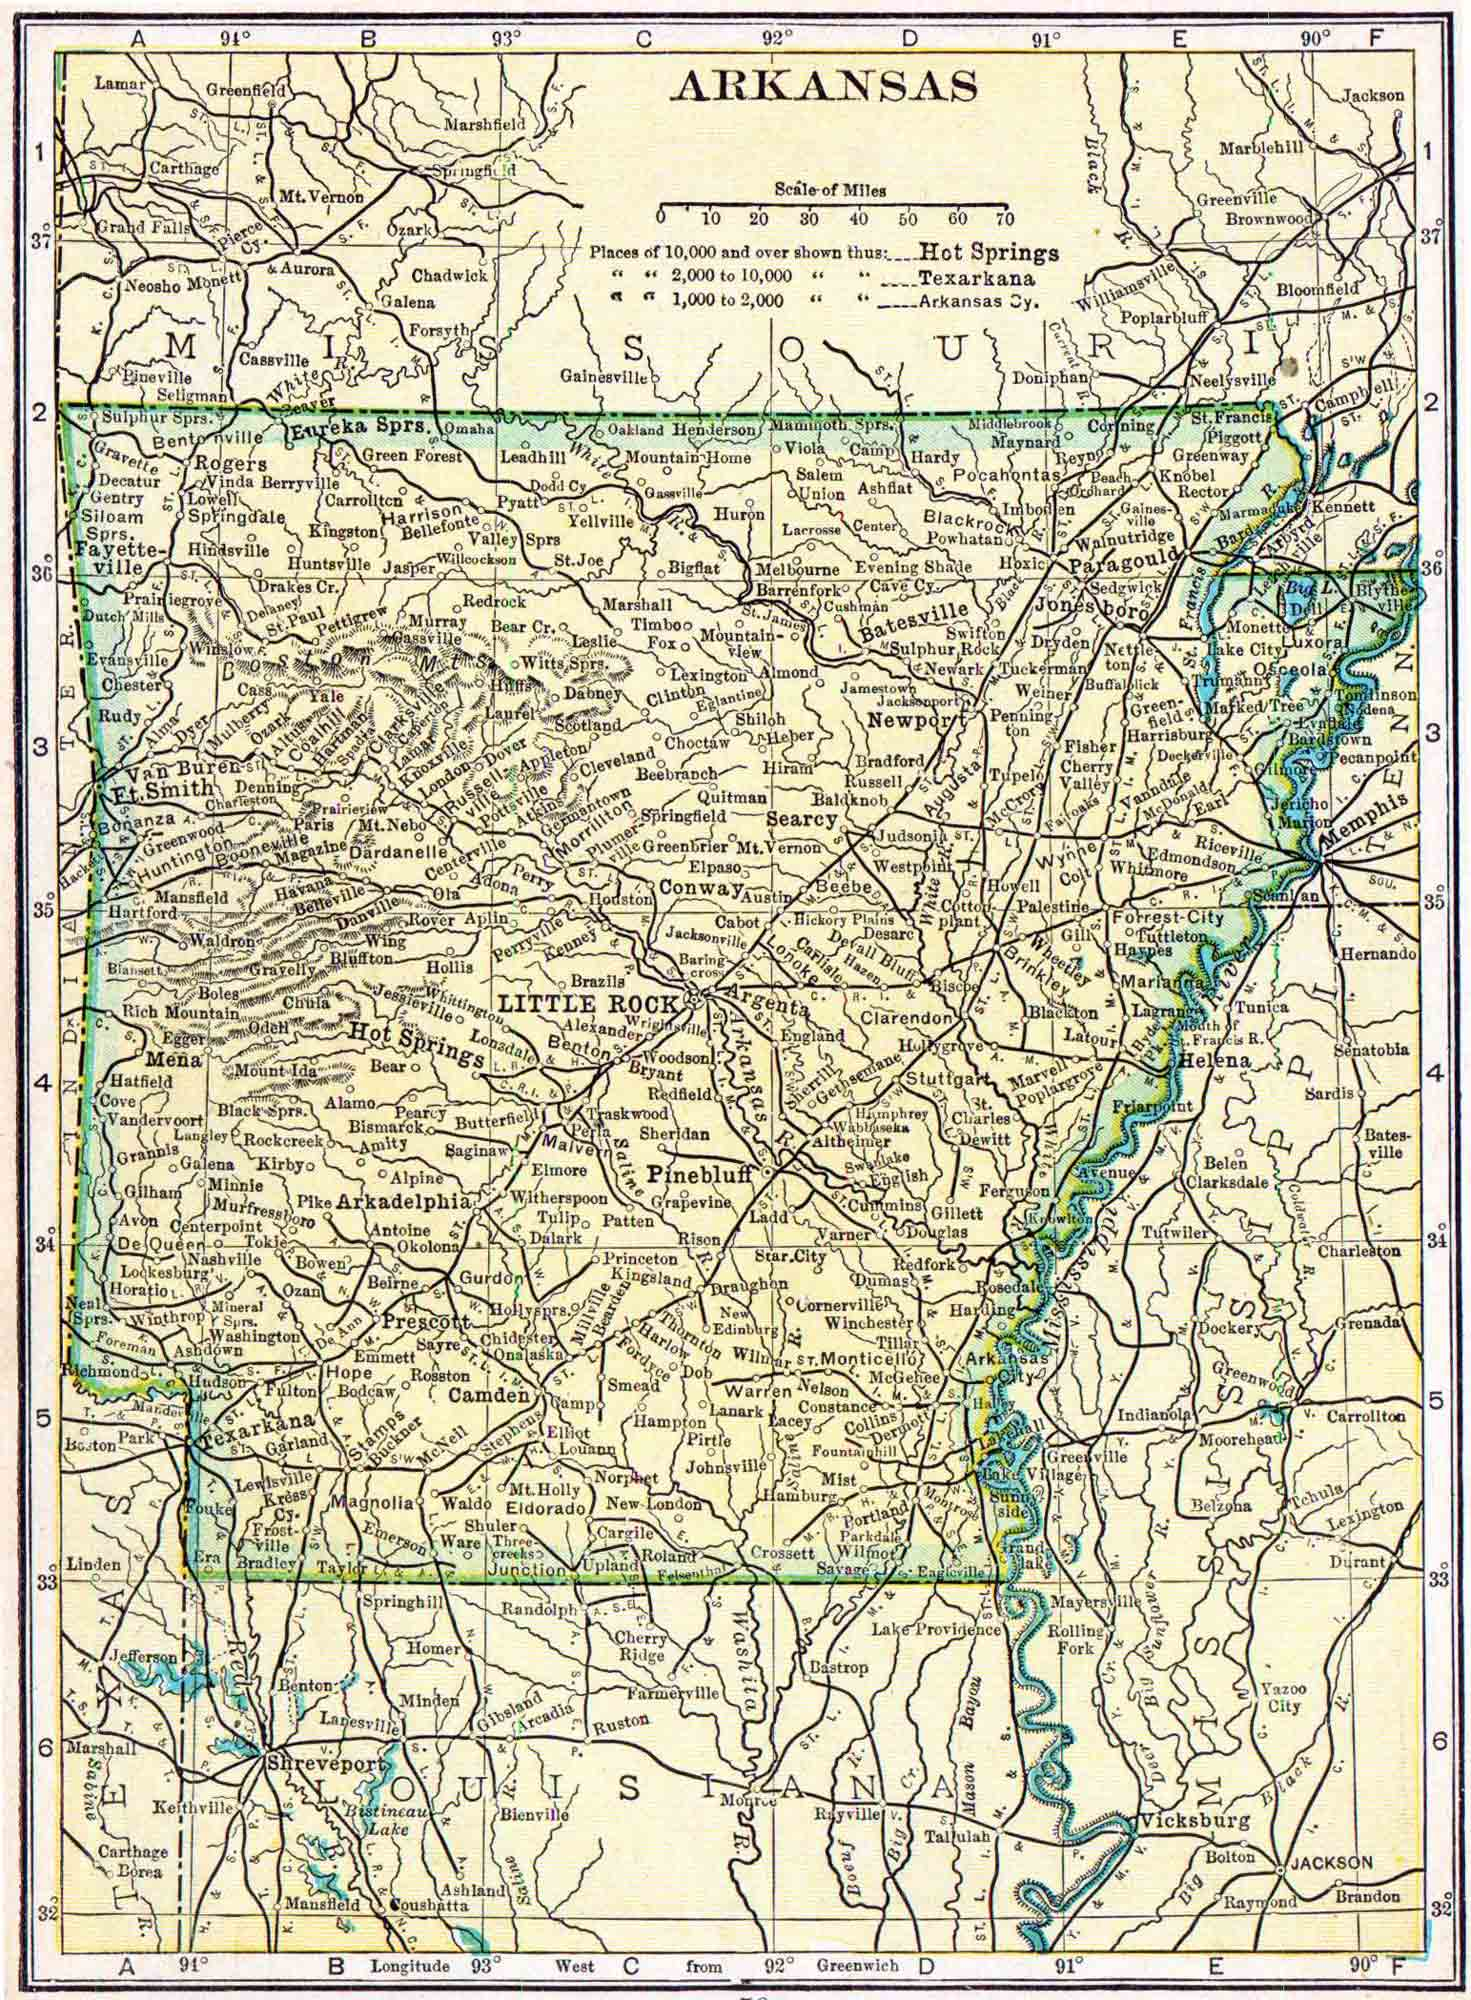 Arkansas Genealogy - Free Arkansas Genealogy | Access Genealogy